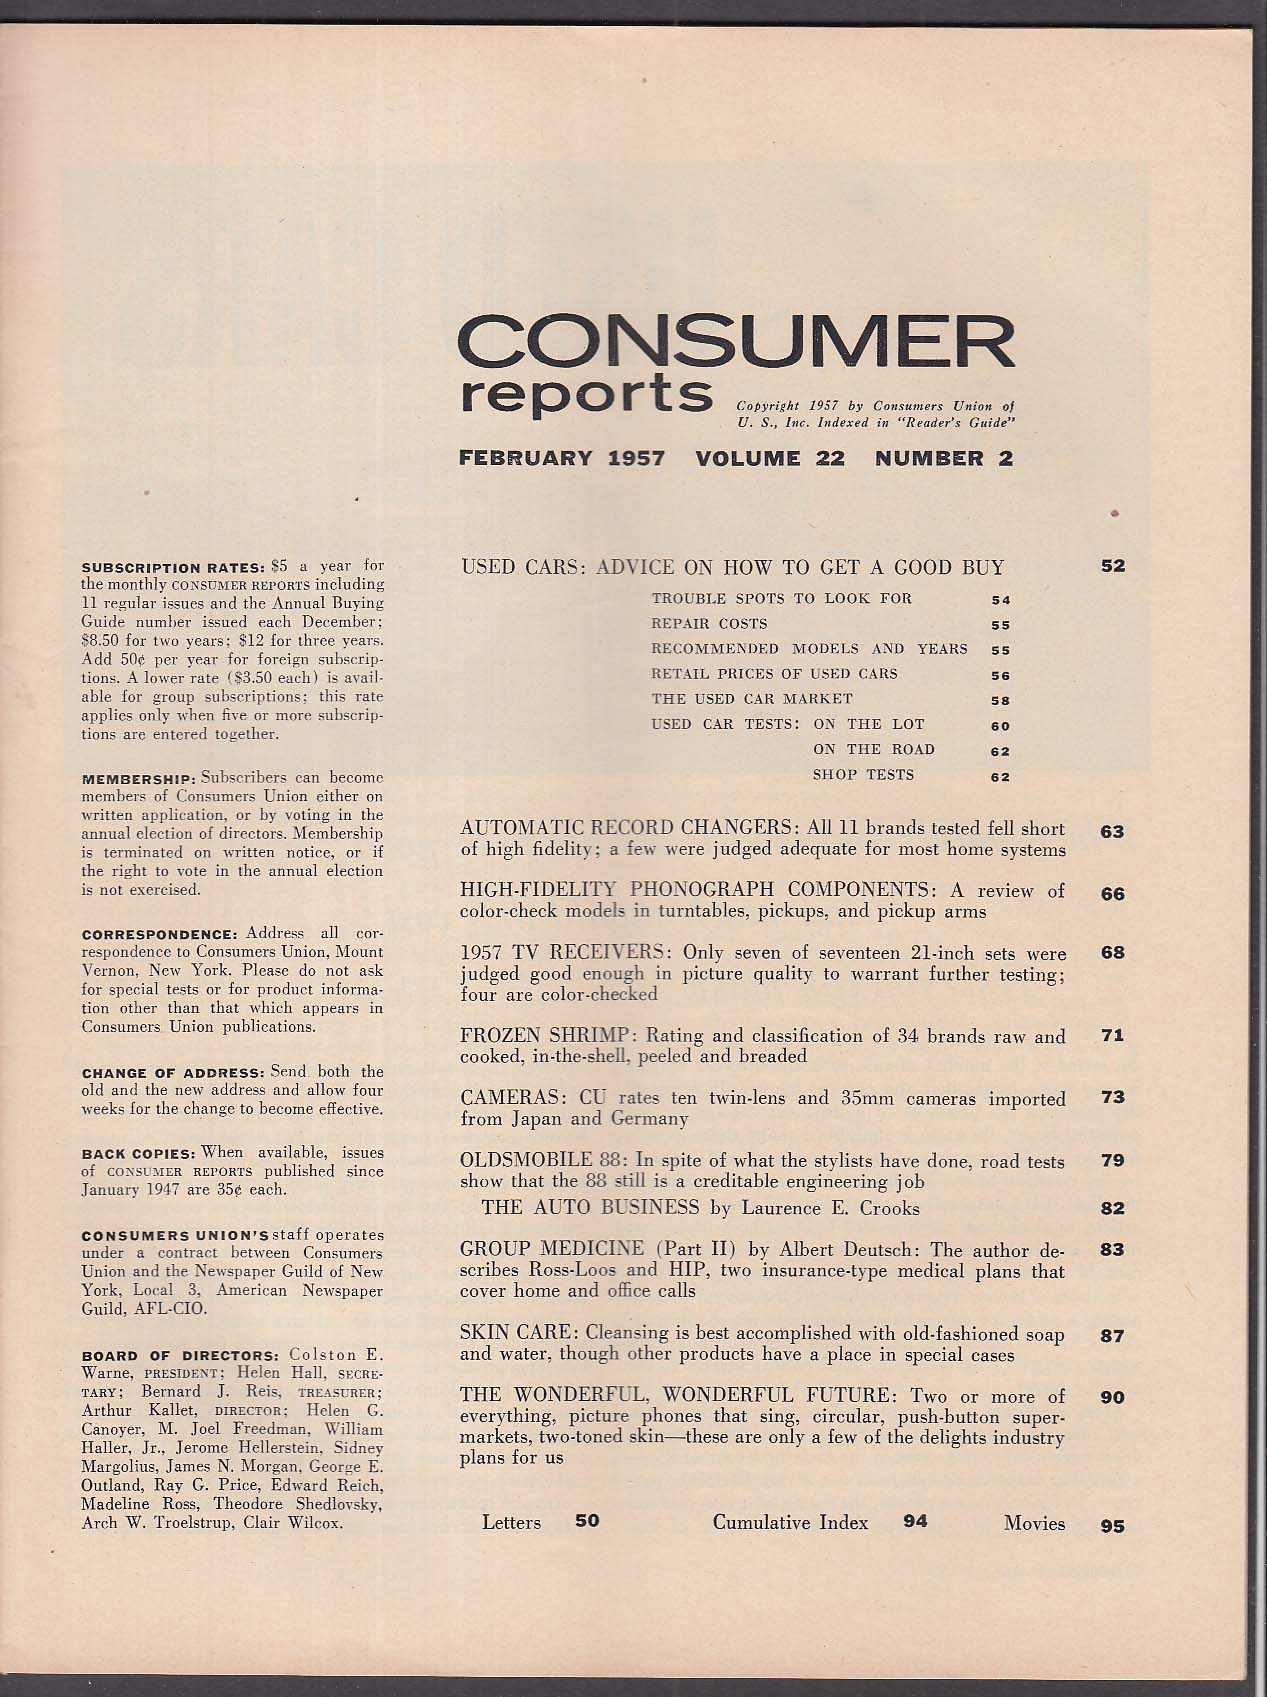 CONSUMER REPORTS Oldsmobile 88 road test; Used Car Buying Guide 2 1957